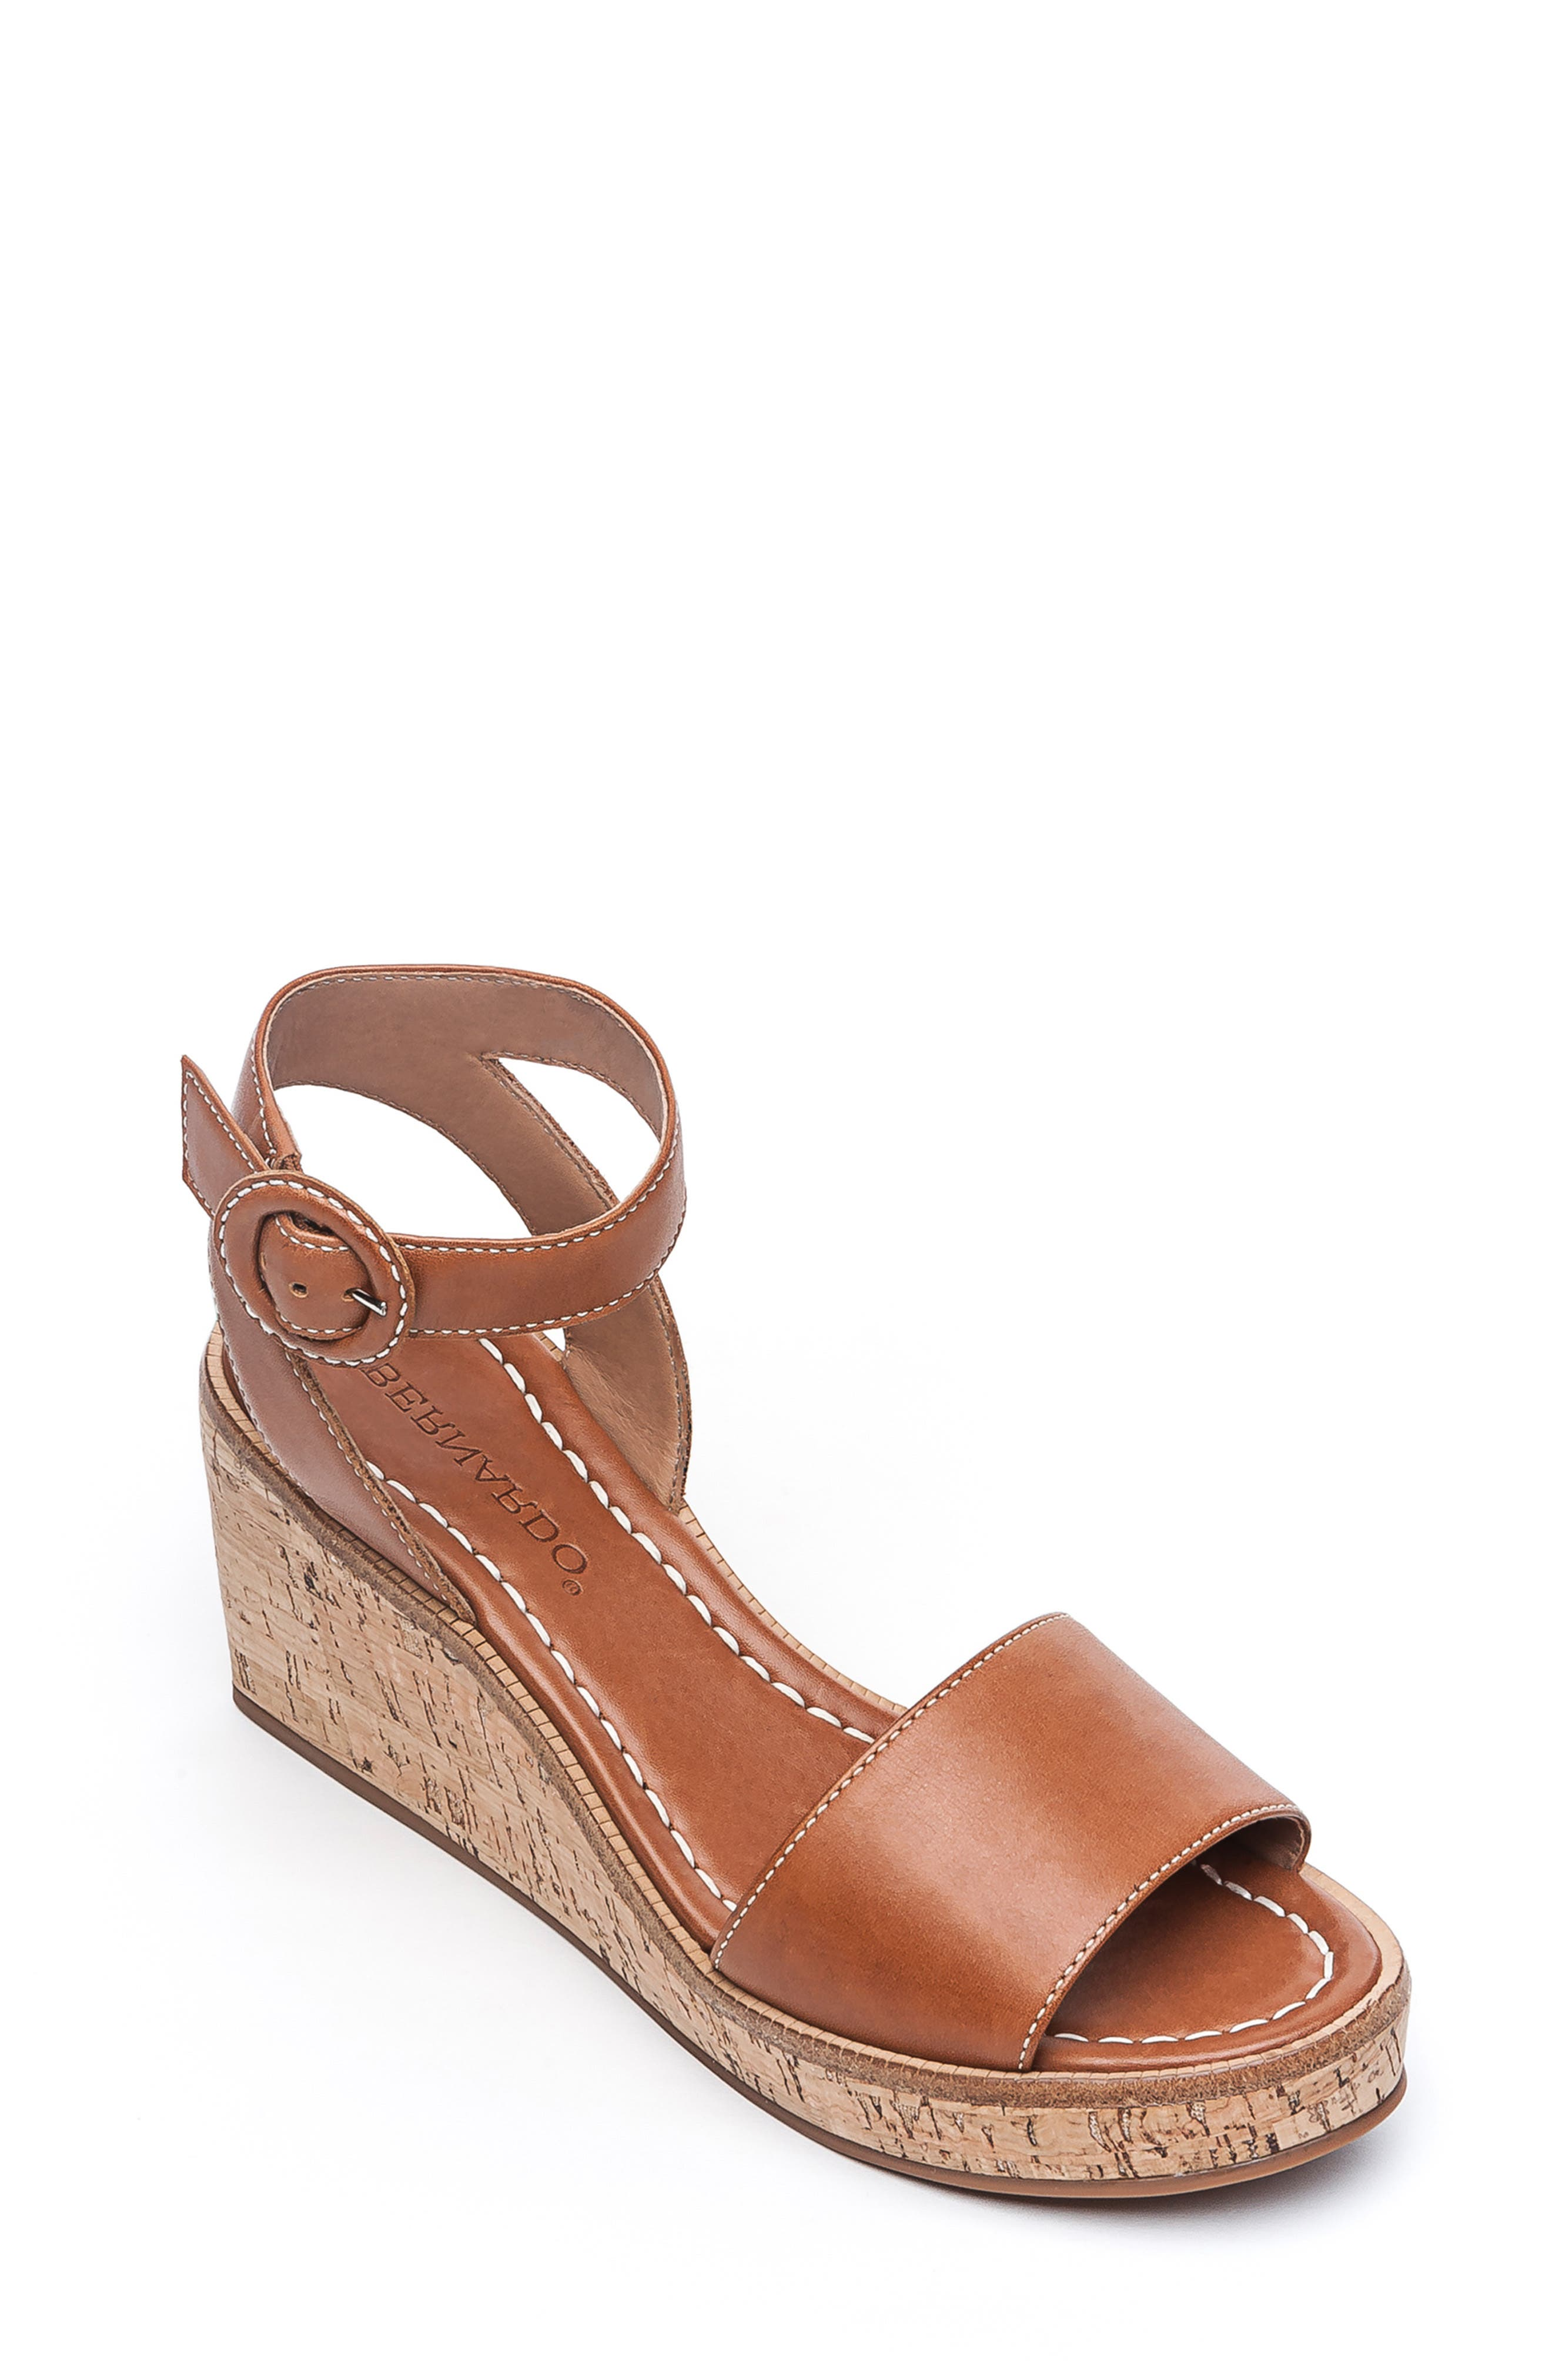 BERNARDO, Footwear Kelly Wedge Sandal, Main thumbnail 1, color, LUGGAGE ANTIQUE LEATHER